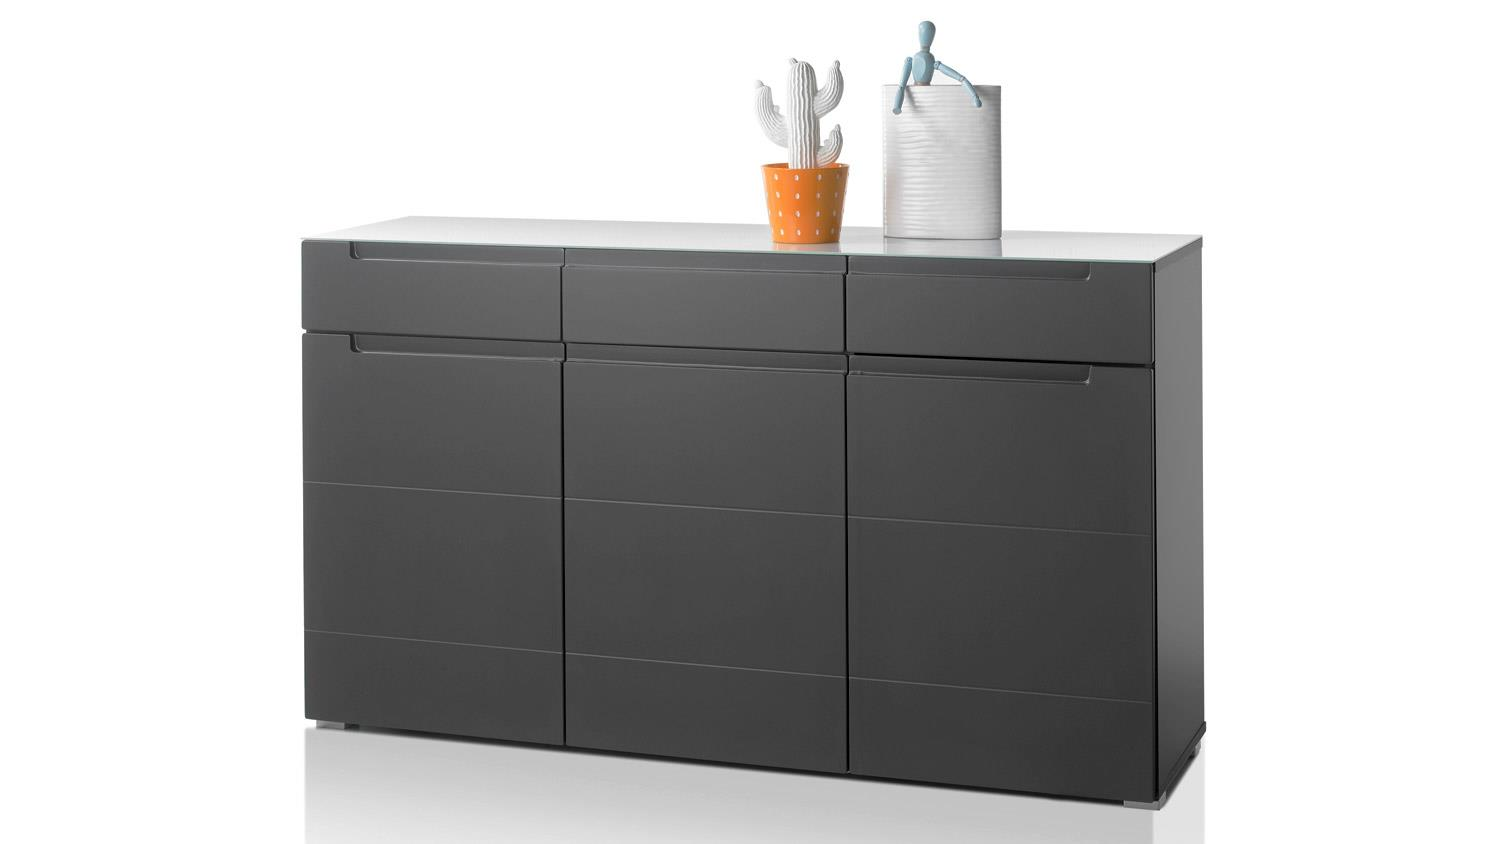 sideboard tiga in mdf grau matt tiefzieh mit satinierter glasplatte. Black Bedroom Furniture Sets. Home Design Ideas